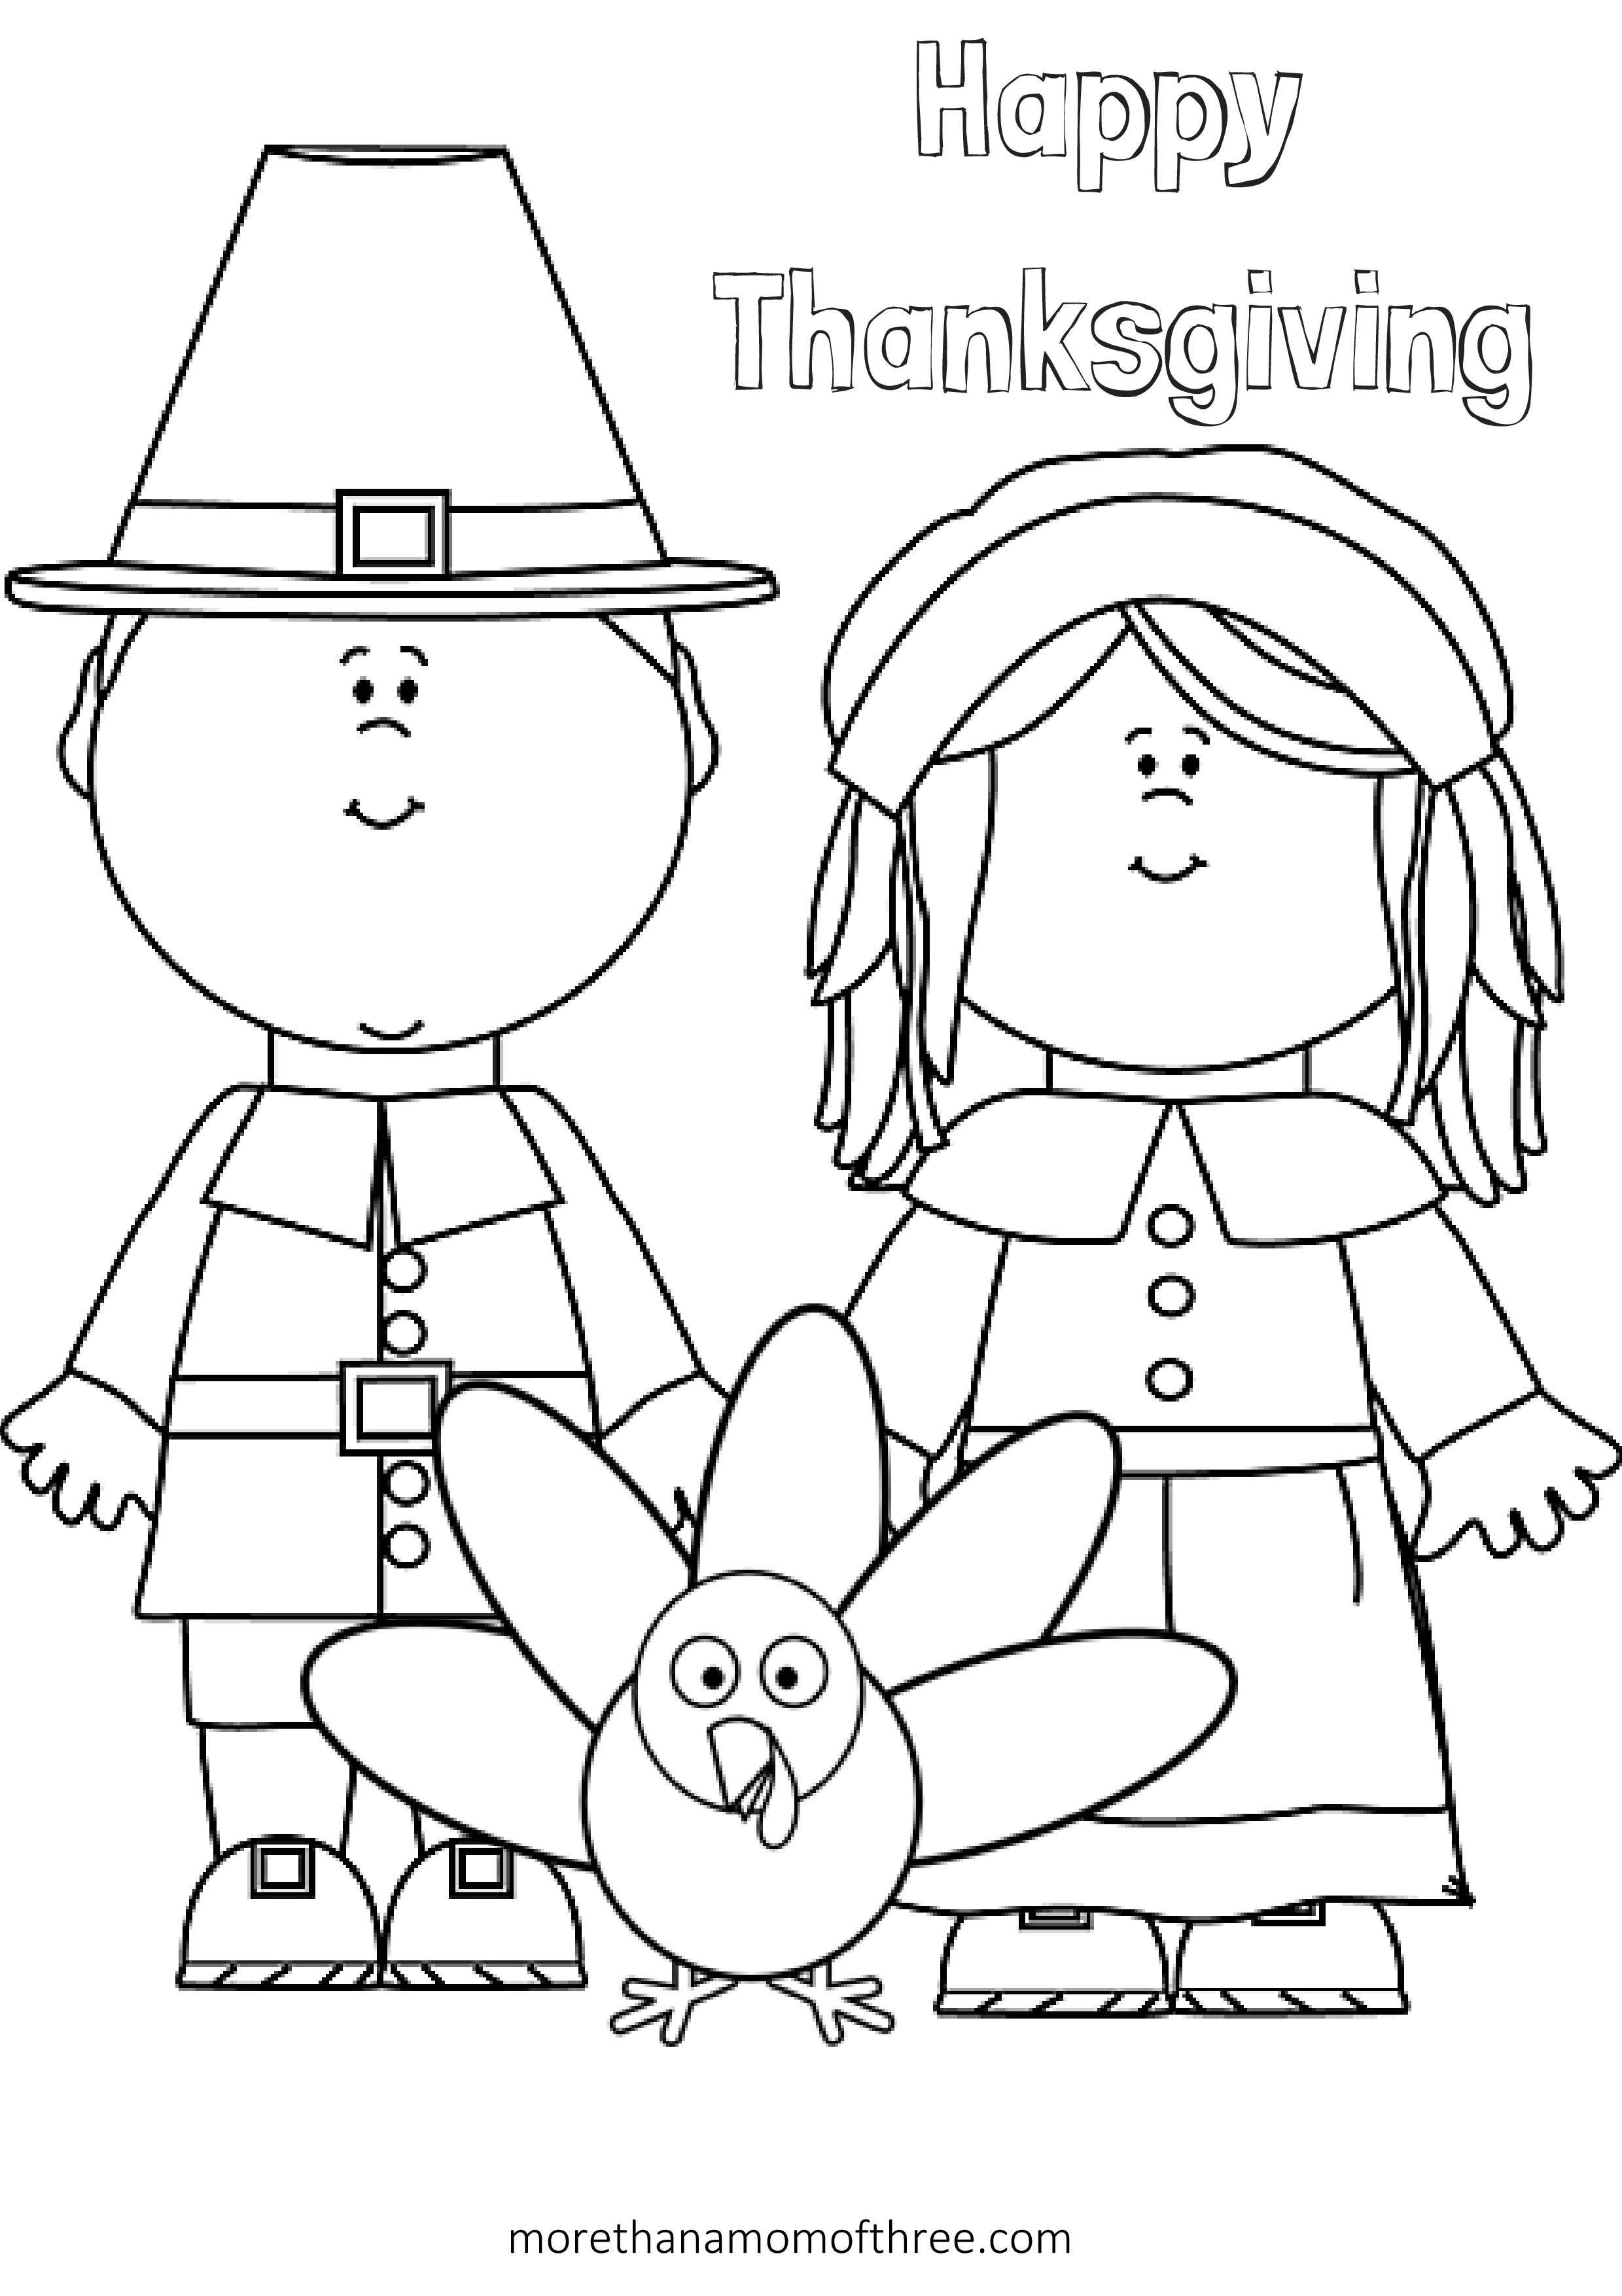 happy thanksgiving coloring pages - Coloring Pages For Thanksgiving